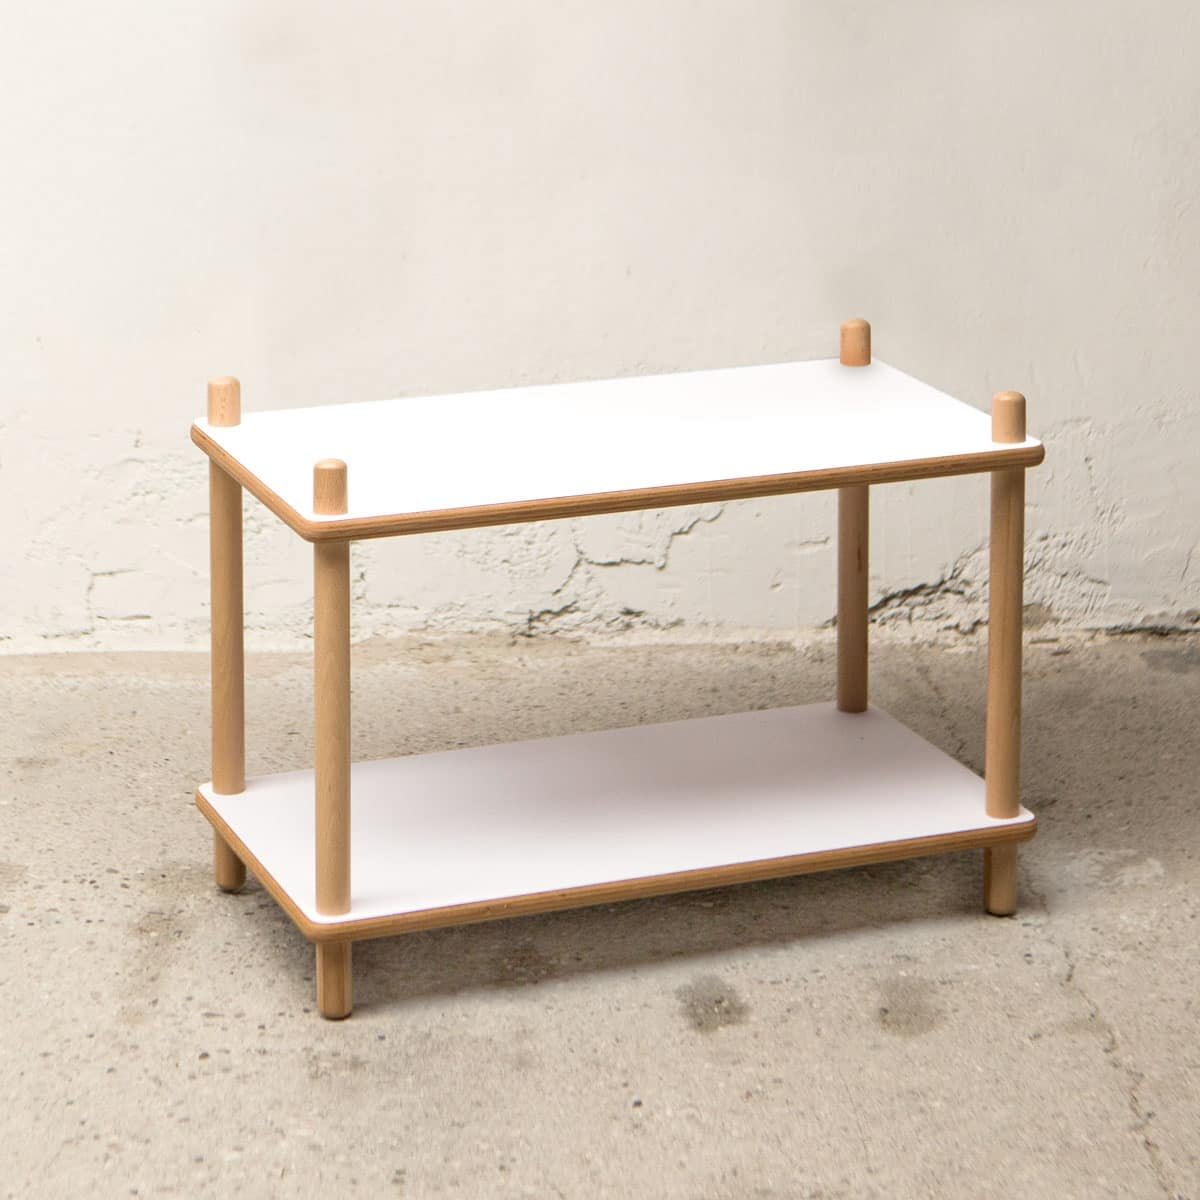 Bolz Low shelf, Lower shelf in beech and laminate, robust